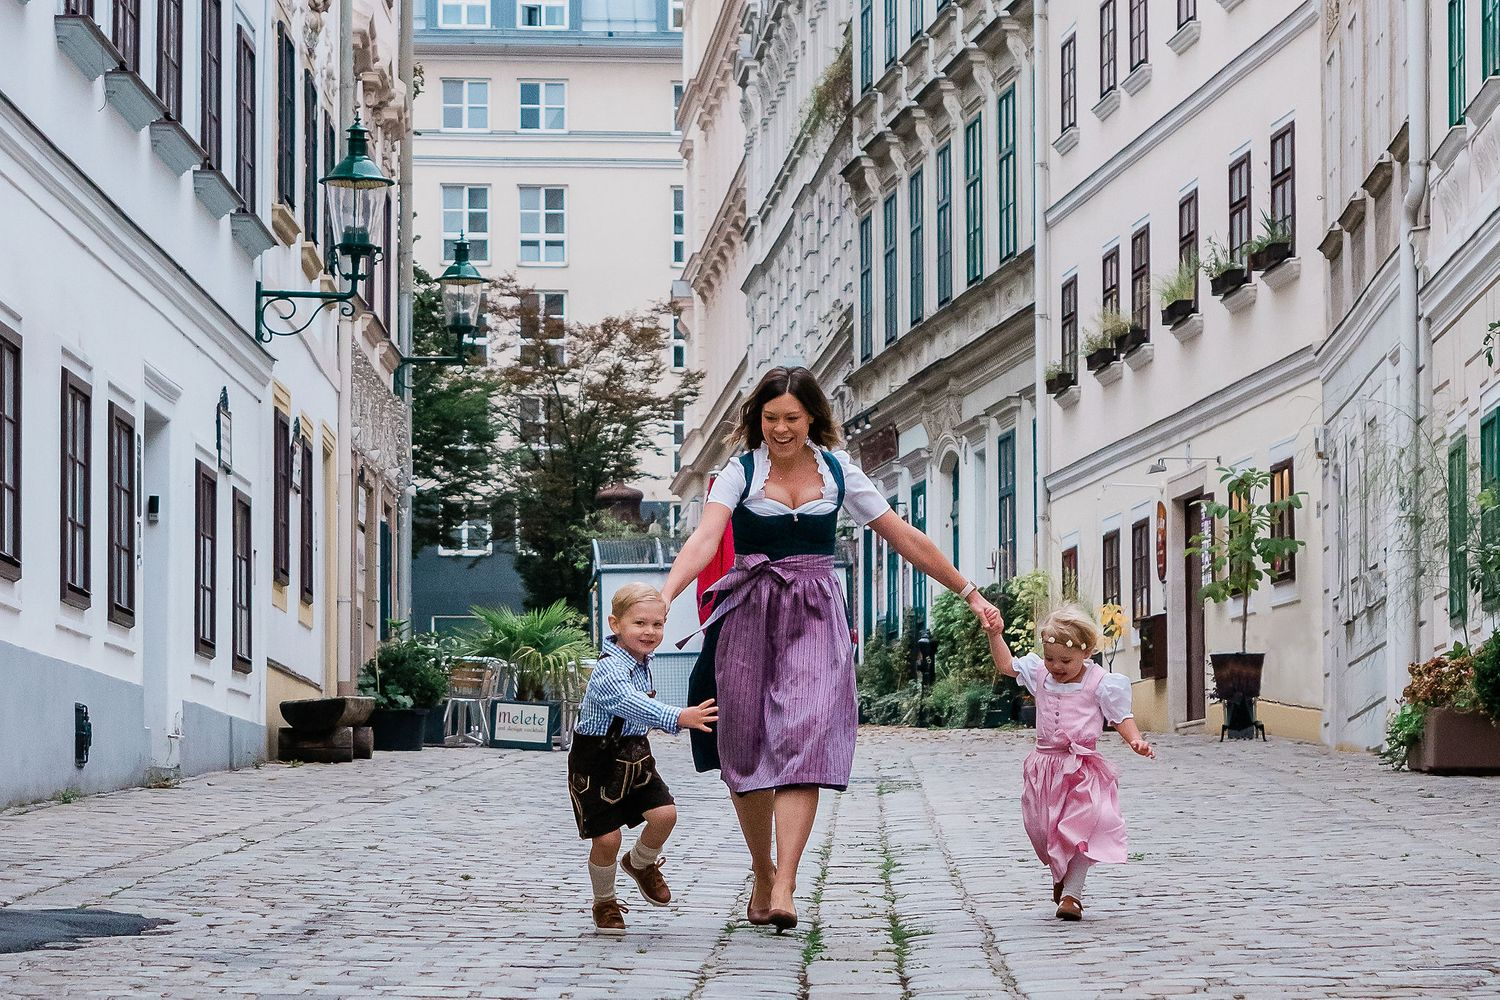 Mother running with kids in Spittelberggasse  7th district  Vienna wearing traditional outfit